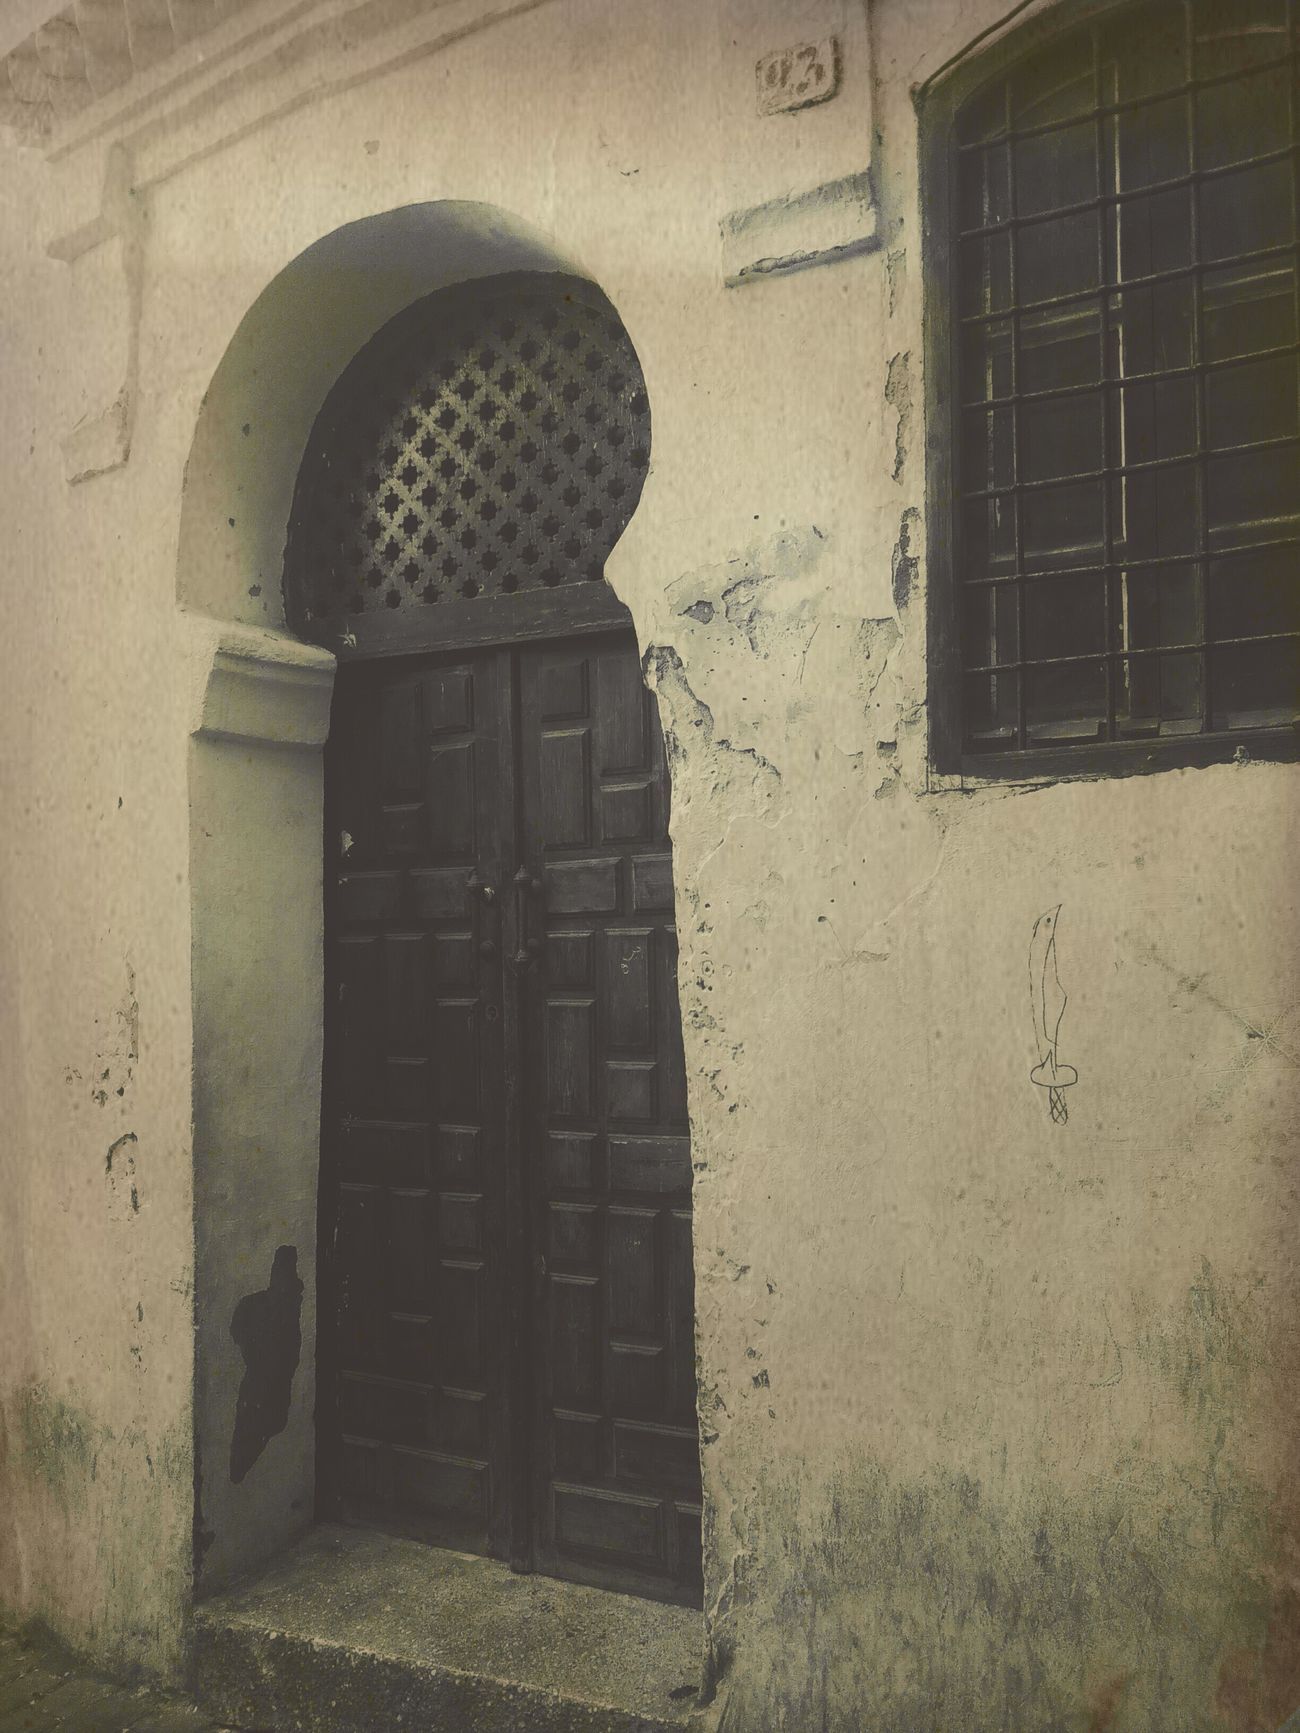 Olddoor Doors Historical Building Architecture Old Buildings Photography Black & White Getting Inspired